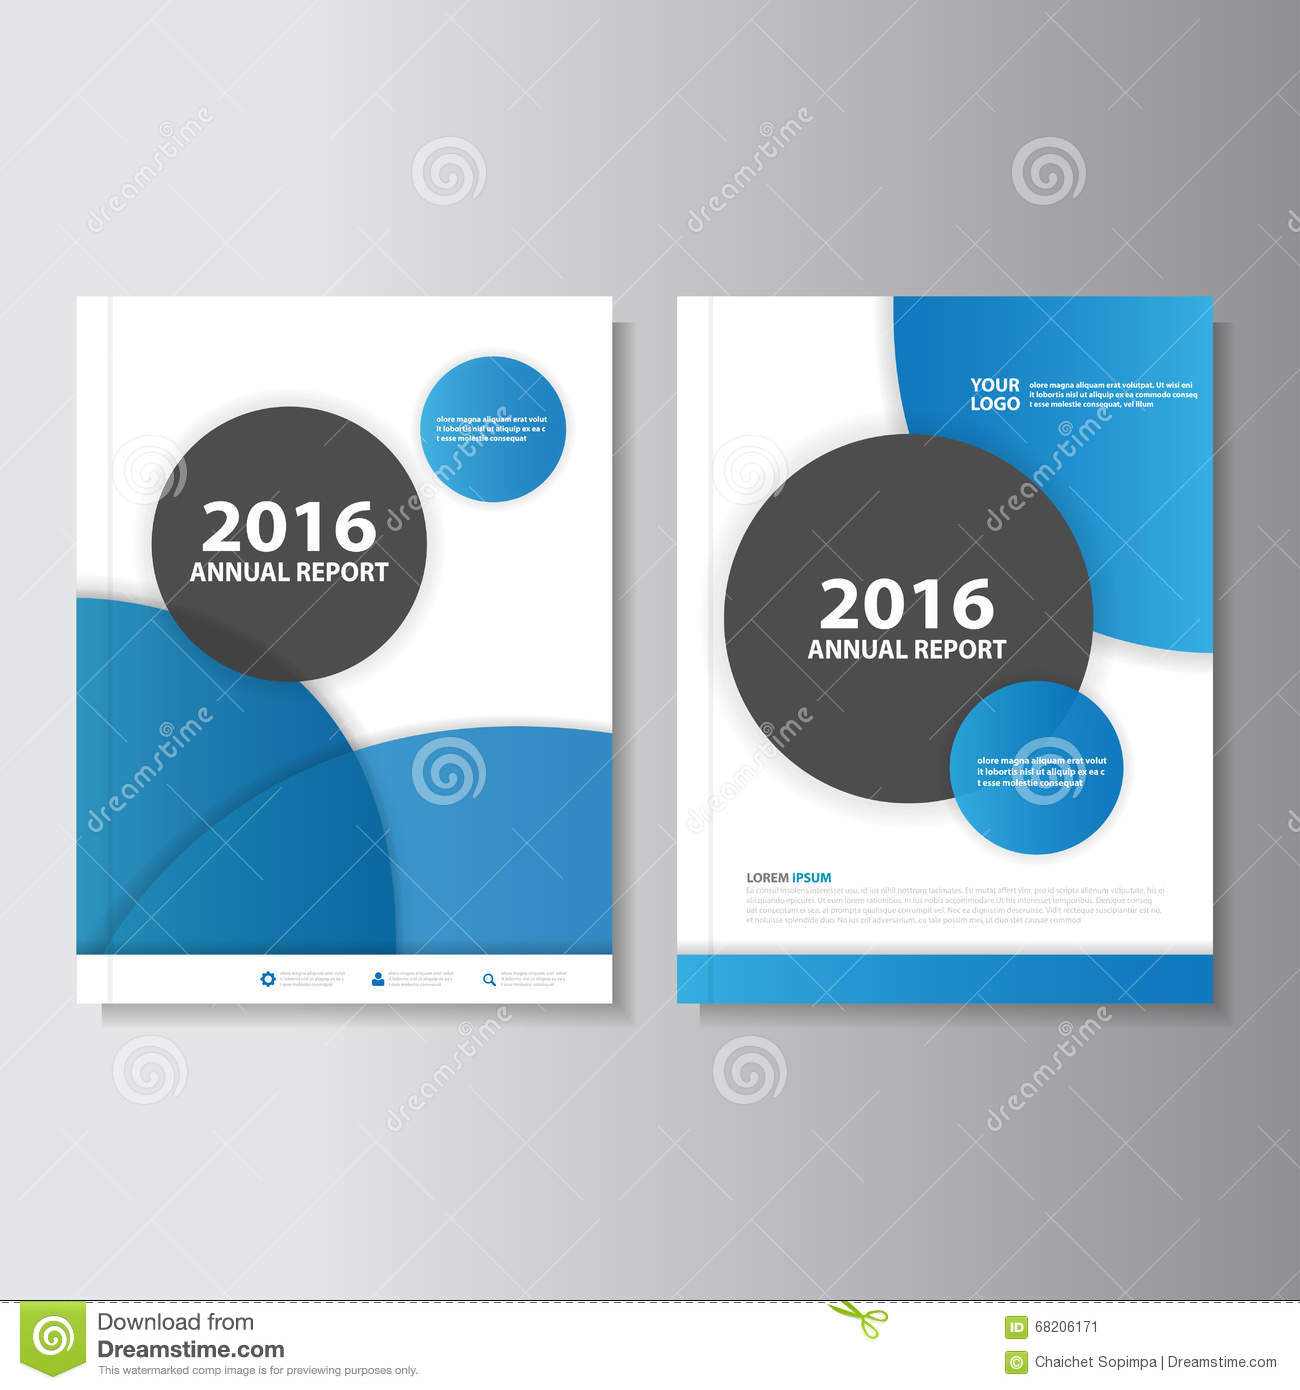 Blue Circle Vector Annual Report Leaflet Brochure Flyer Template Design,  Book Cover Layout Design, Abstract Blue Presentation  Annual Report Template Design